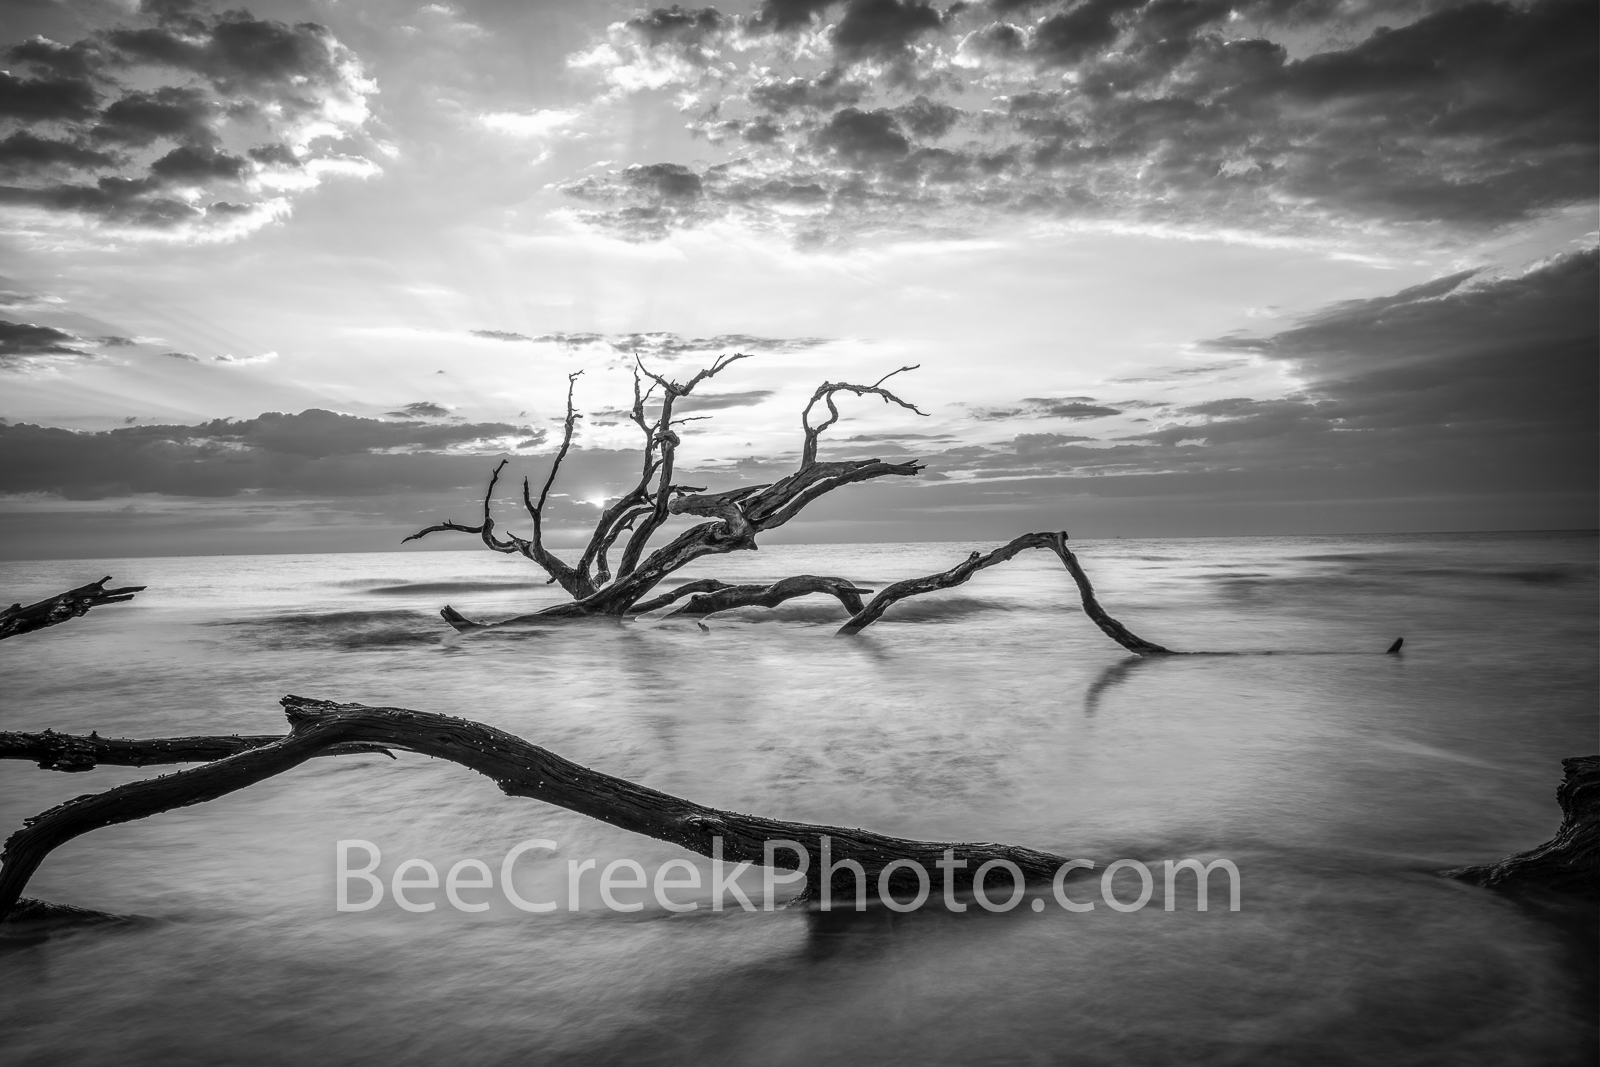 jekyll island, driftwood beach, driftwood beach jekyll island, jekyll island ga, boneyard beach, black and white, b w, sunrise, alantic ocean, deadwood, east coast, reflections, reflecting, clouds, s